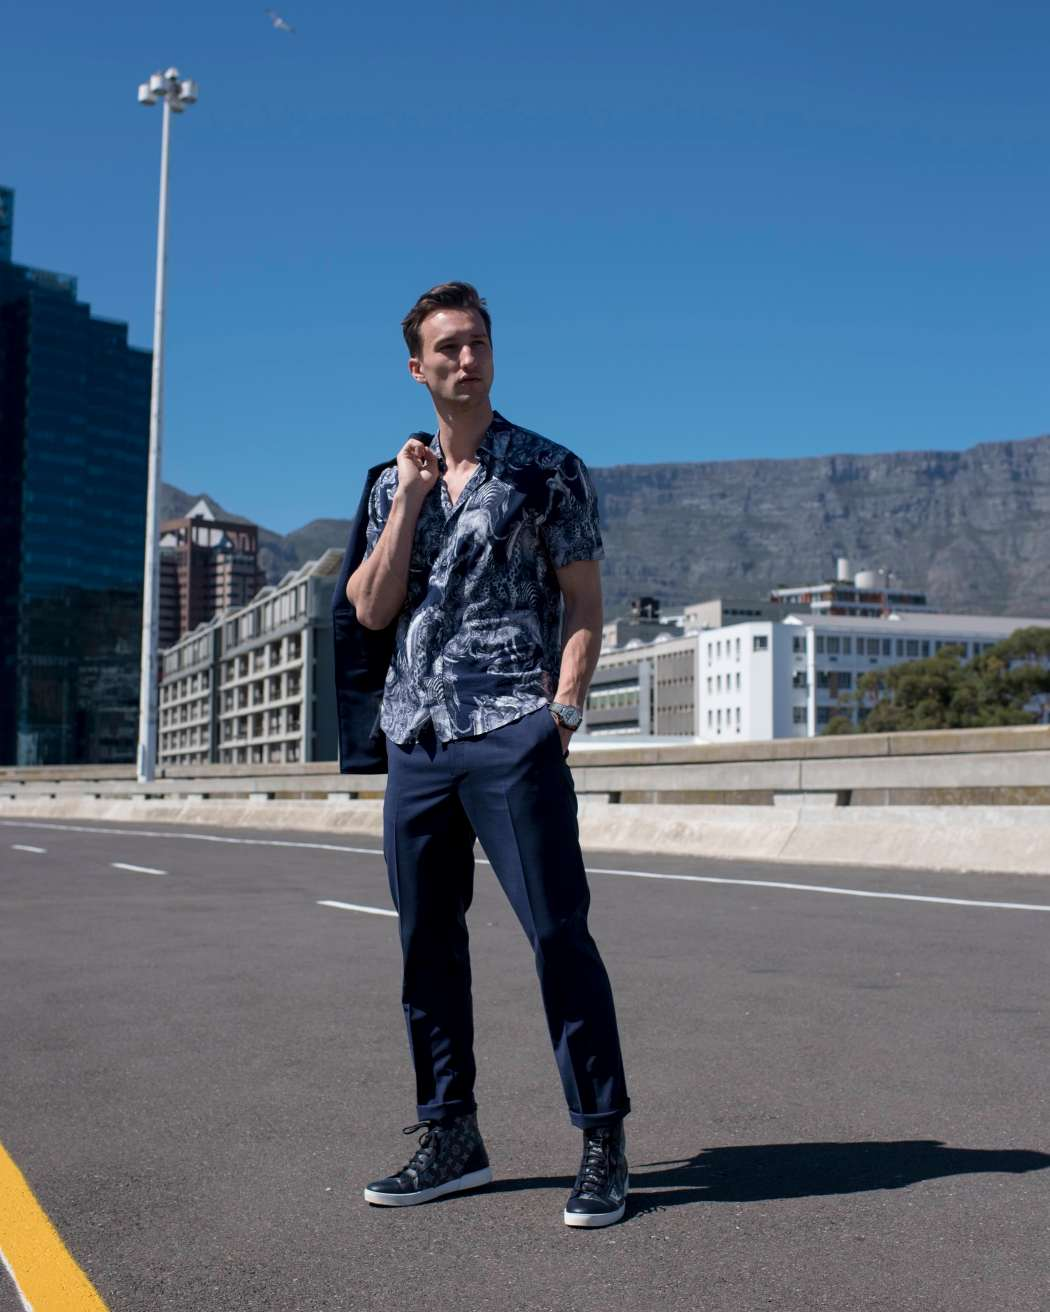 LV SOUTH AFRICA_170210_8